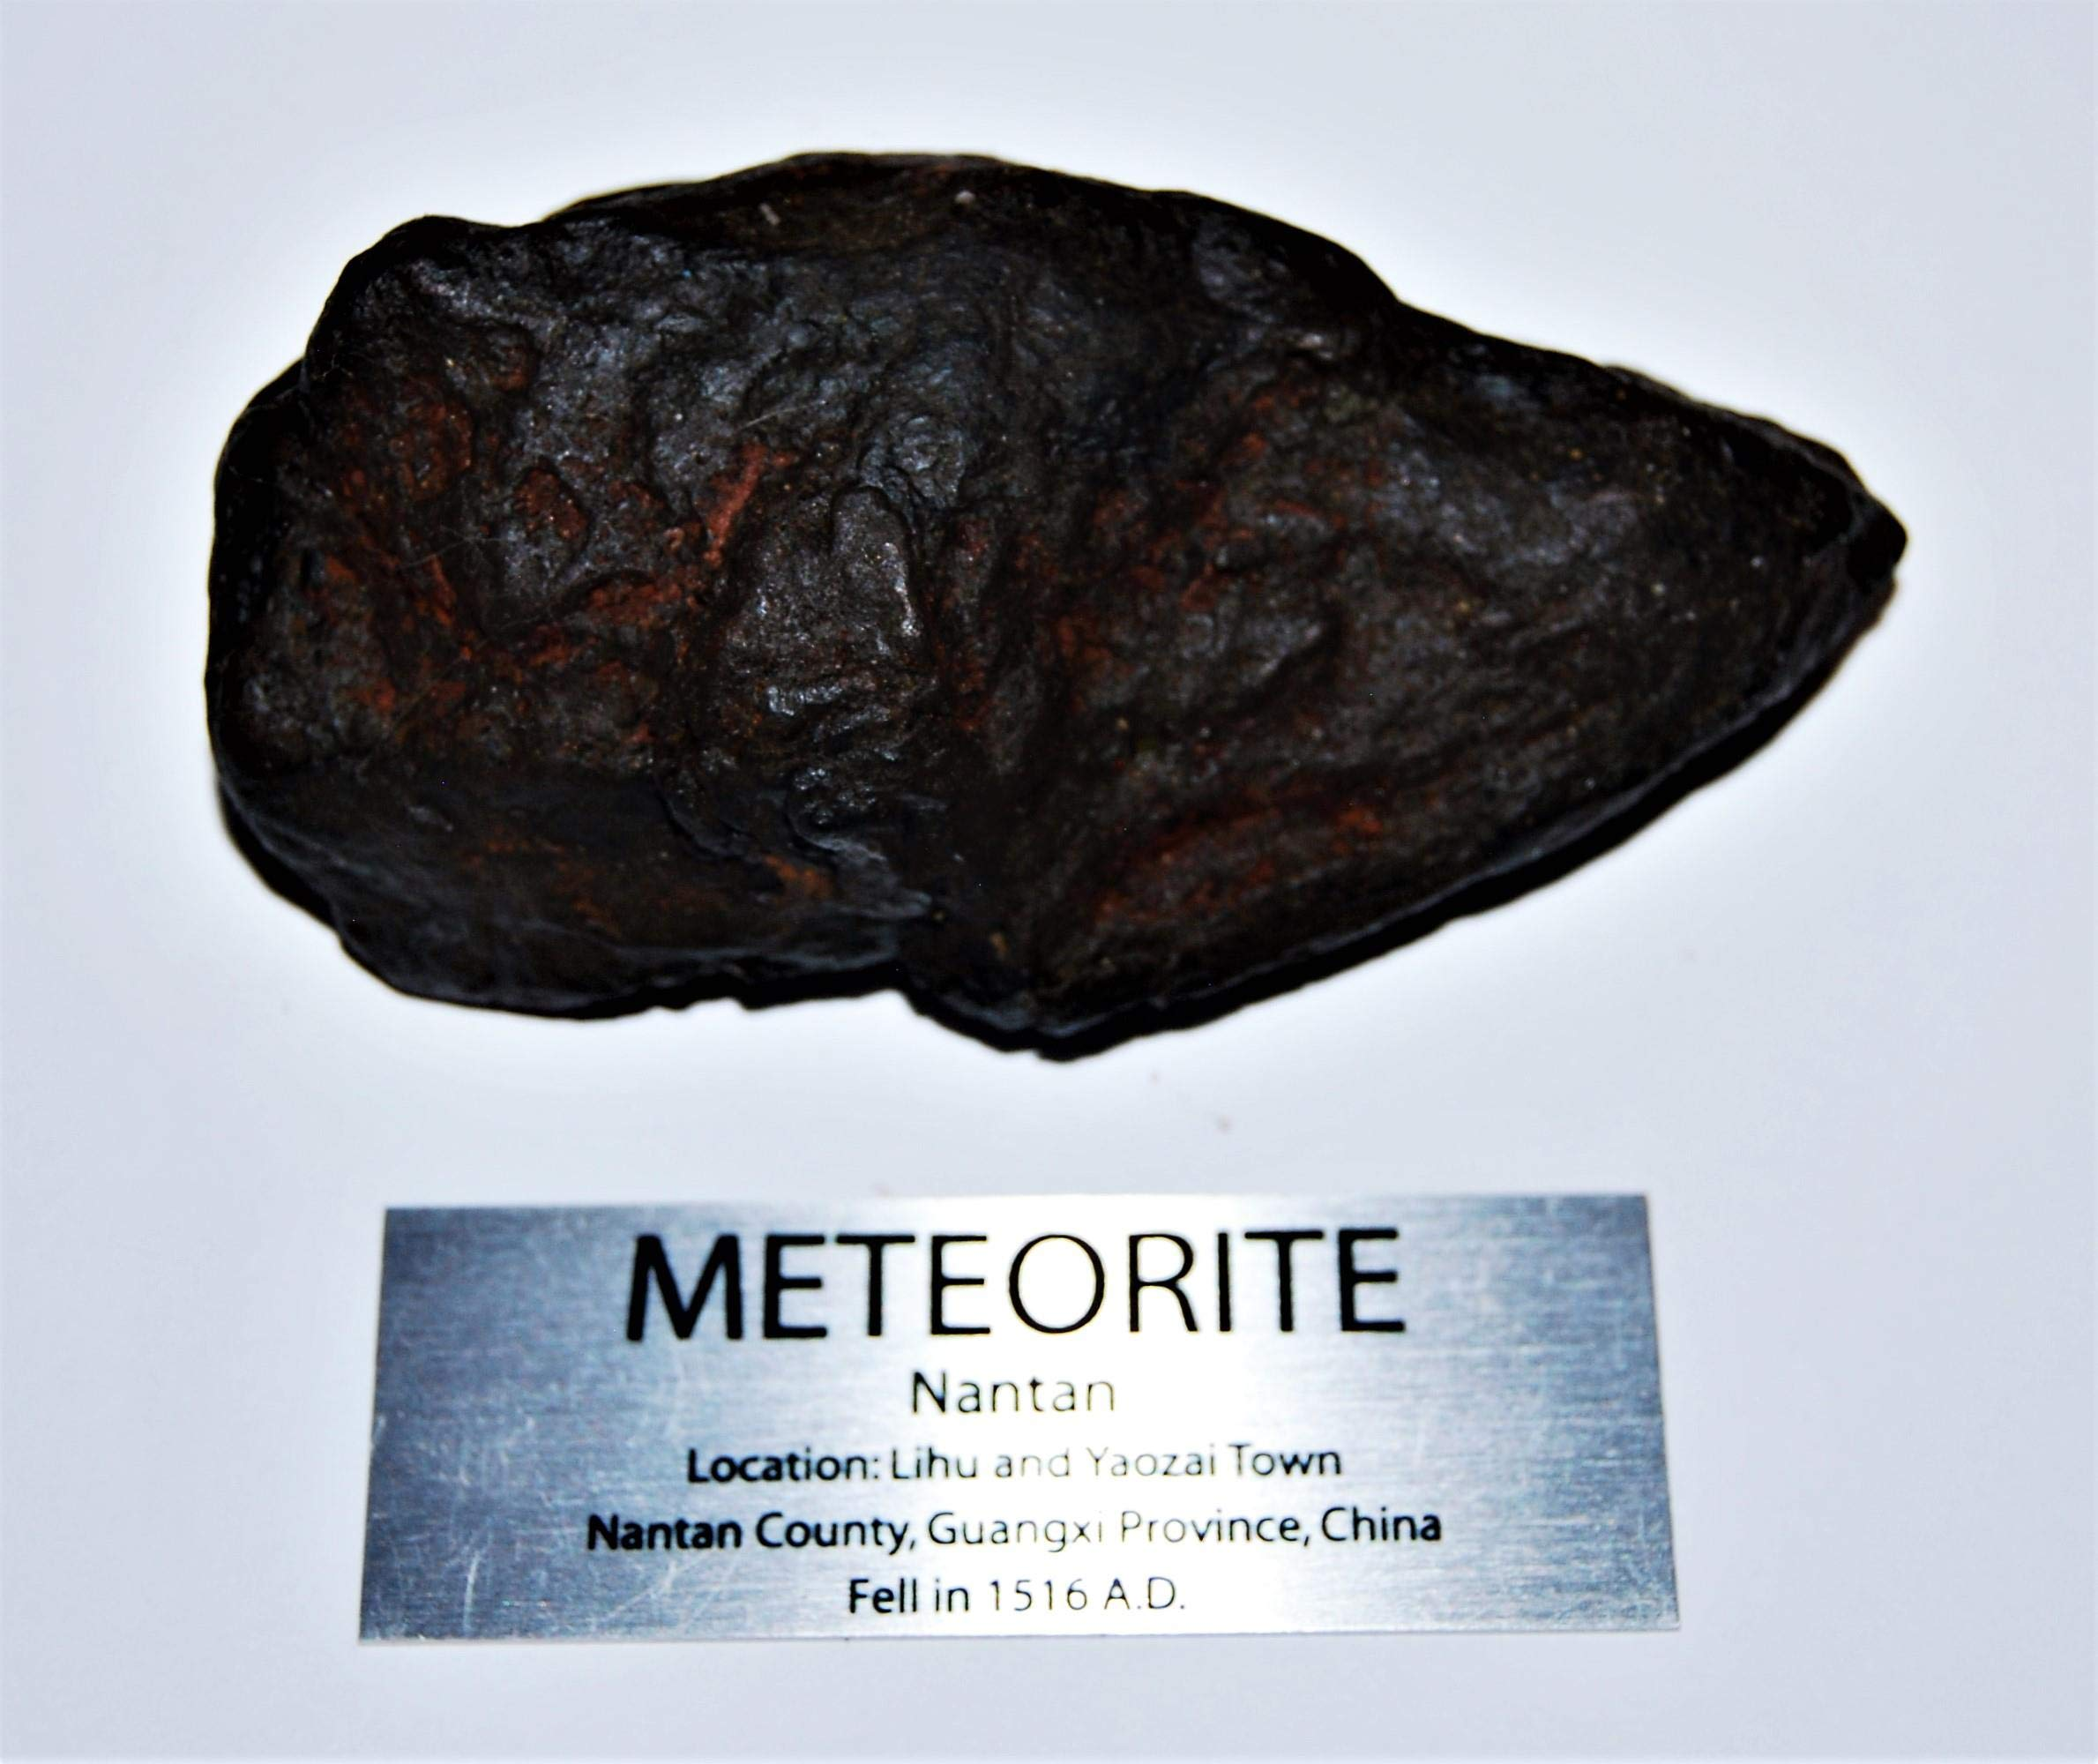 Fossil, Meteorites, & More NANTAN Iron Nickel Meteorite -Genuine-481.9 Gram + Label & COA# 14348 20o by Fossil, Meteorites, & More (Image #1)